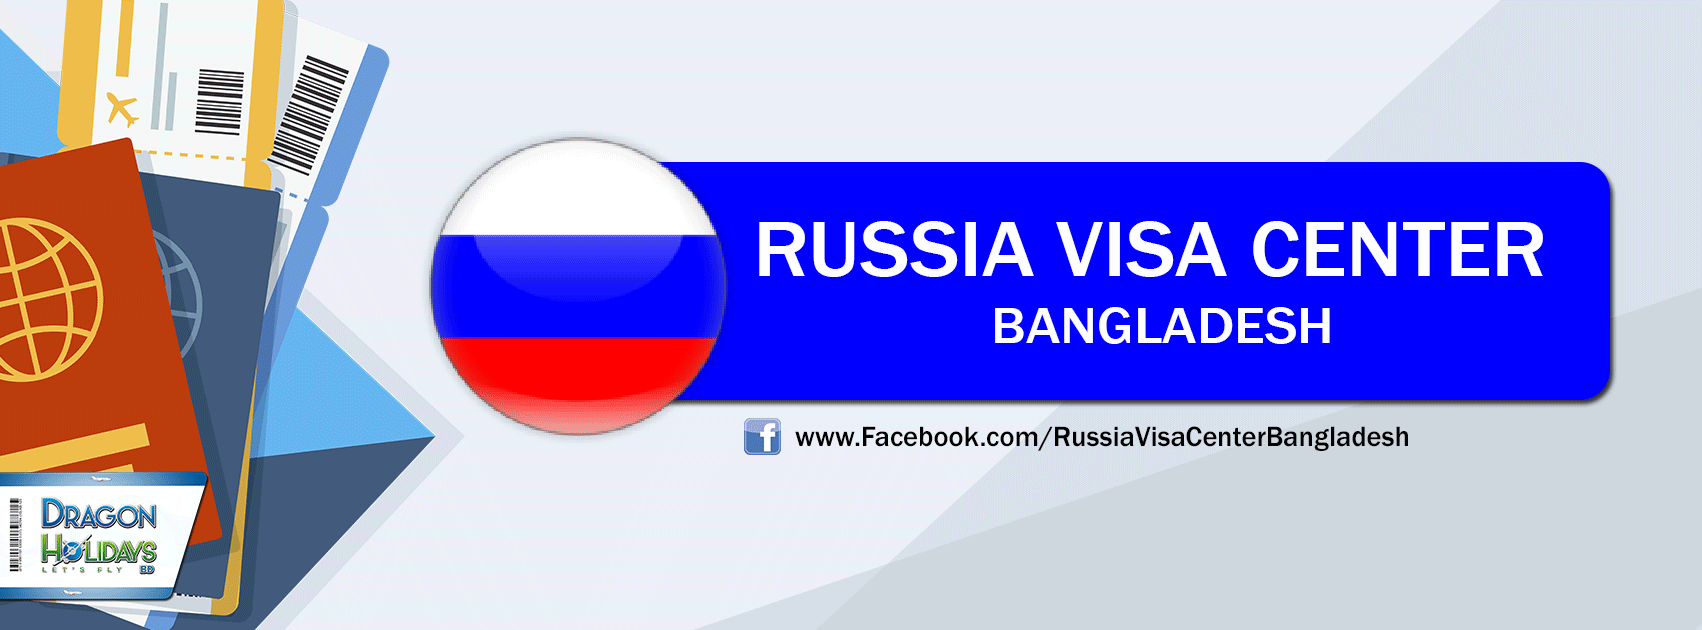 russia-fb-cover-page-new-visa